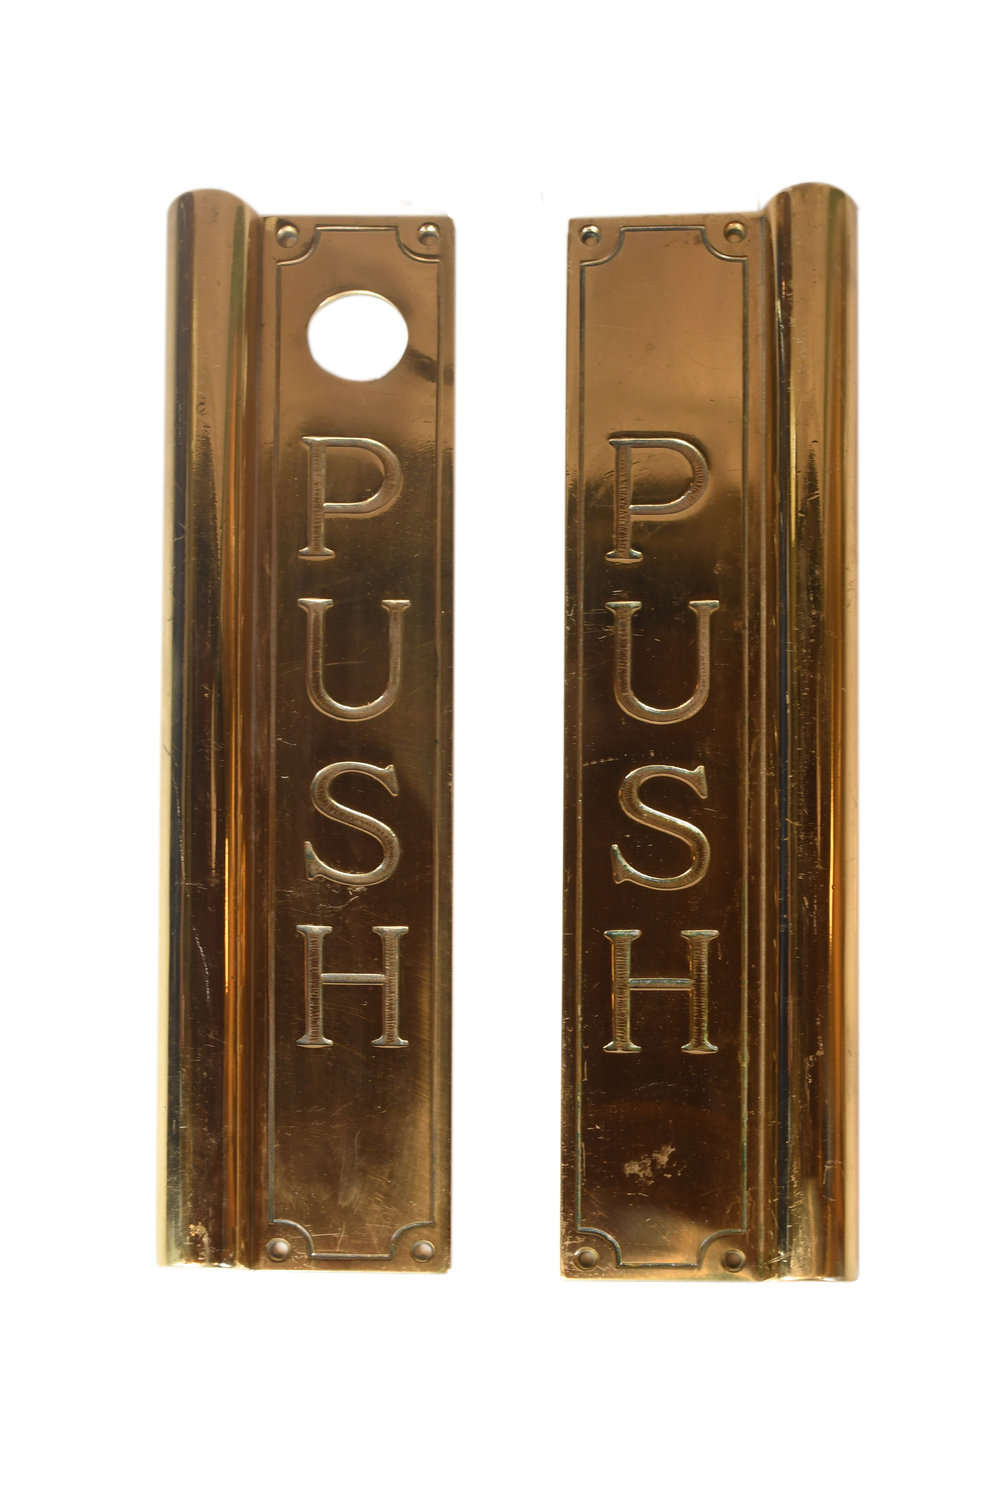 CAST BRASS PUSH PLATES AA# H20172   1 set available $285.00 for set